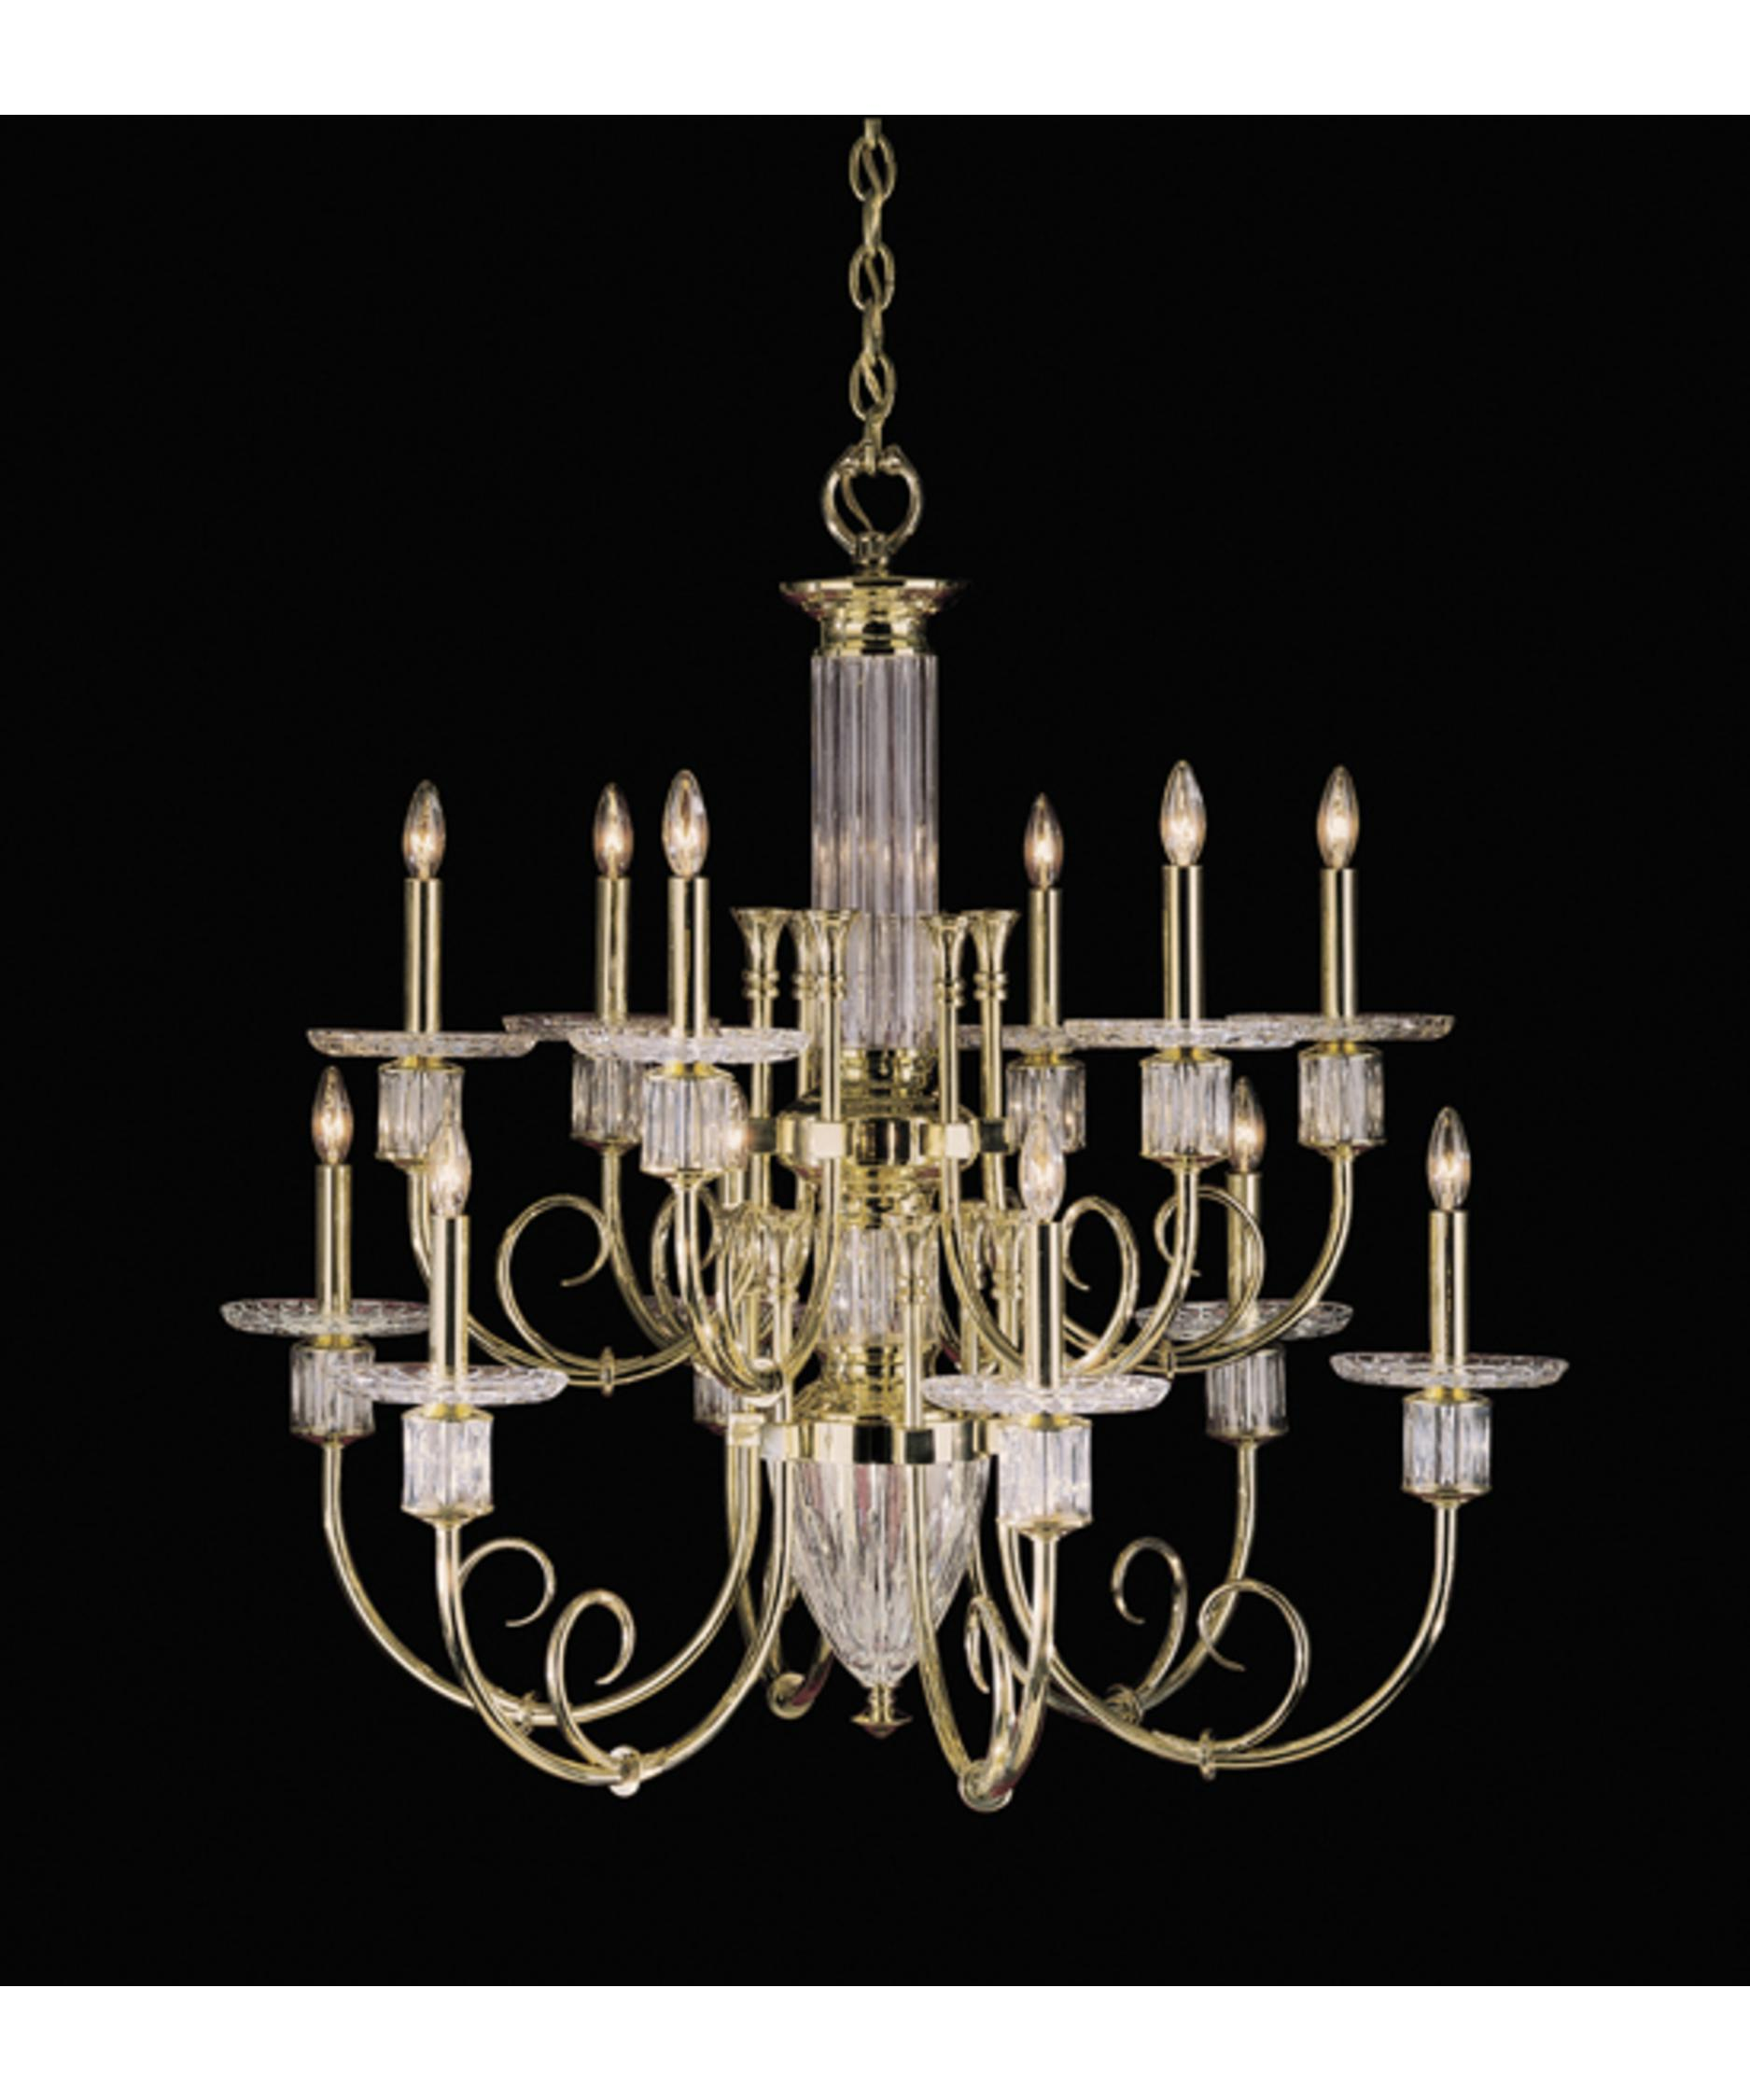 nulco lighting  sherwood  inch wide  light chandelier  - shown in polished brass